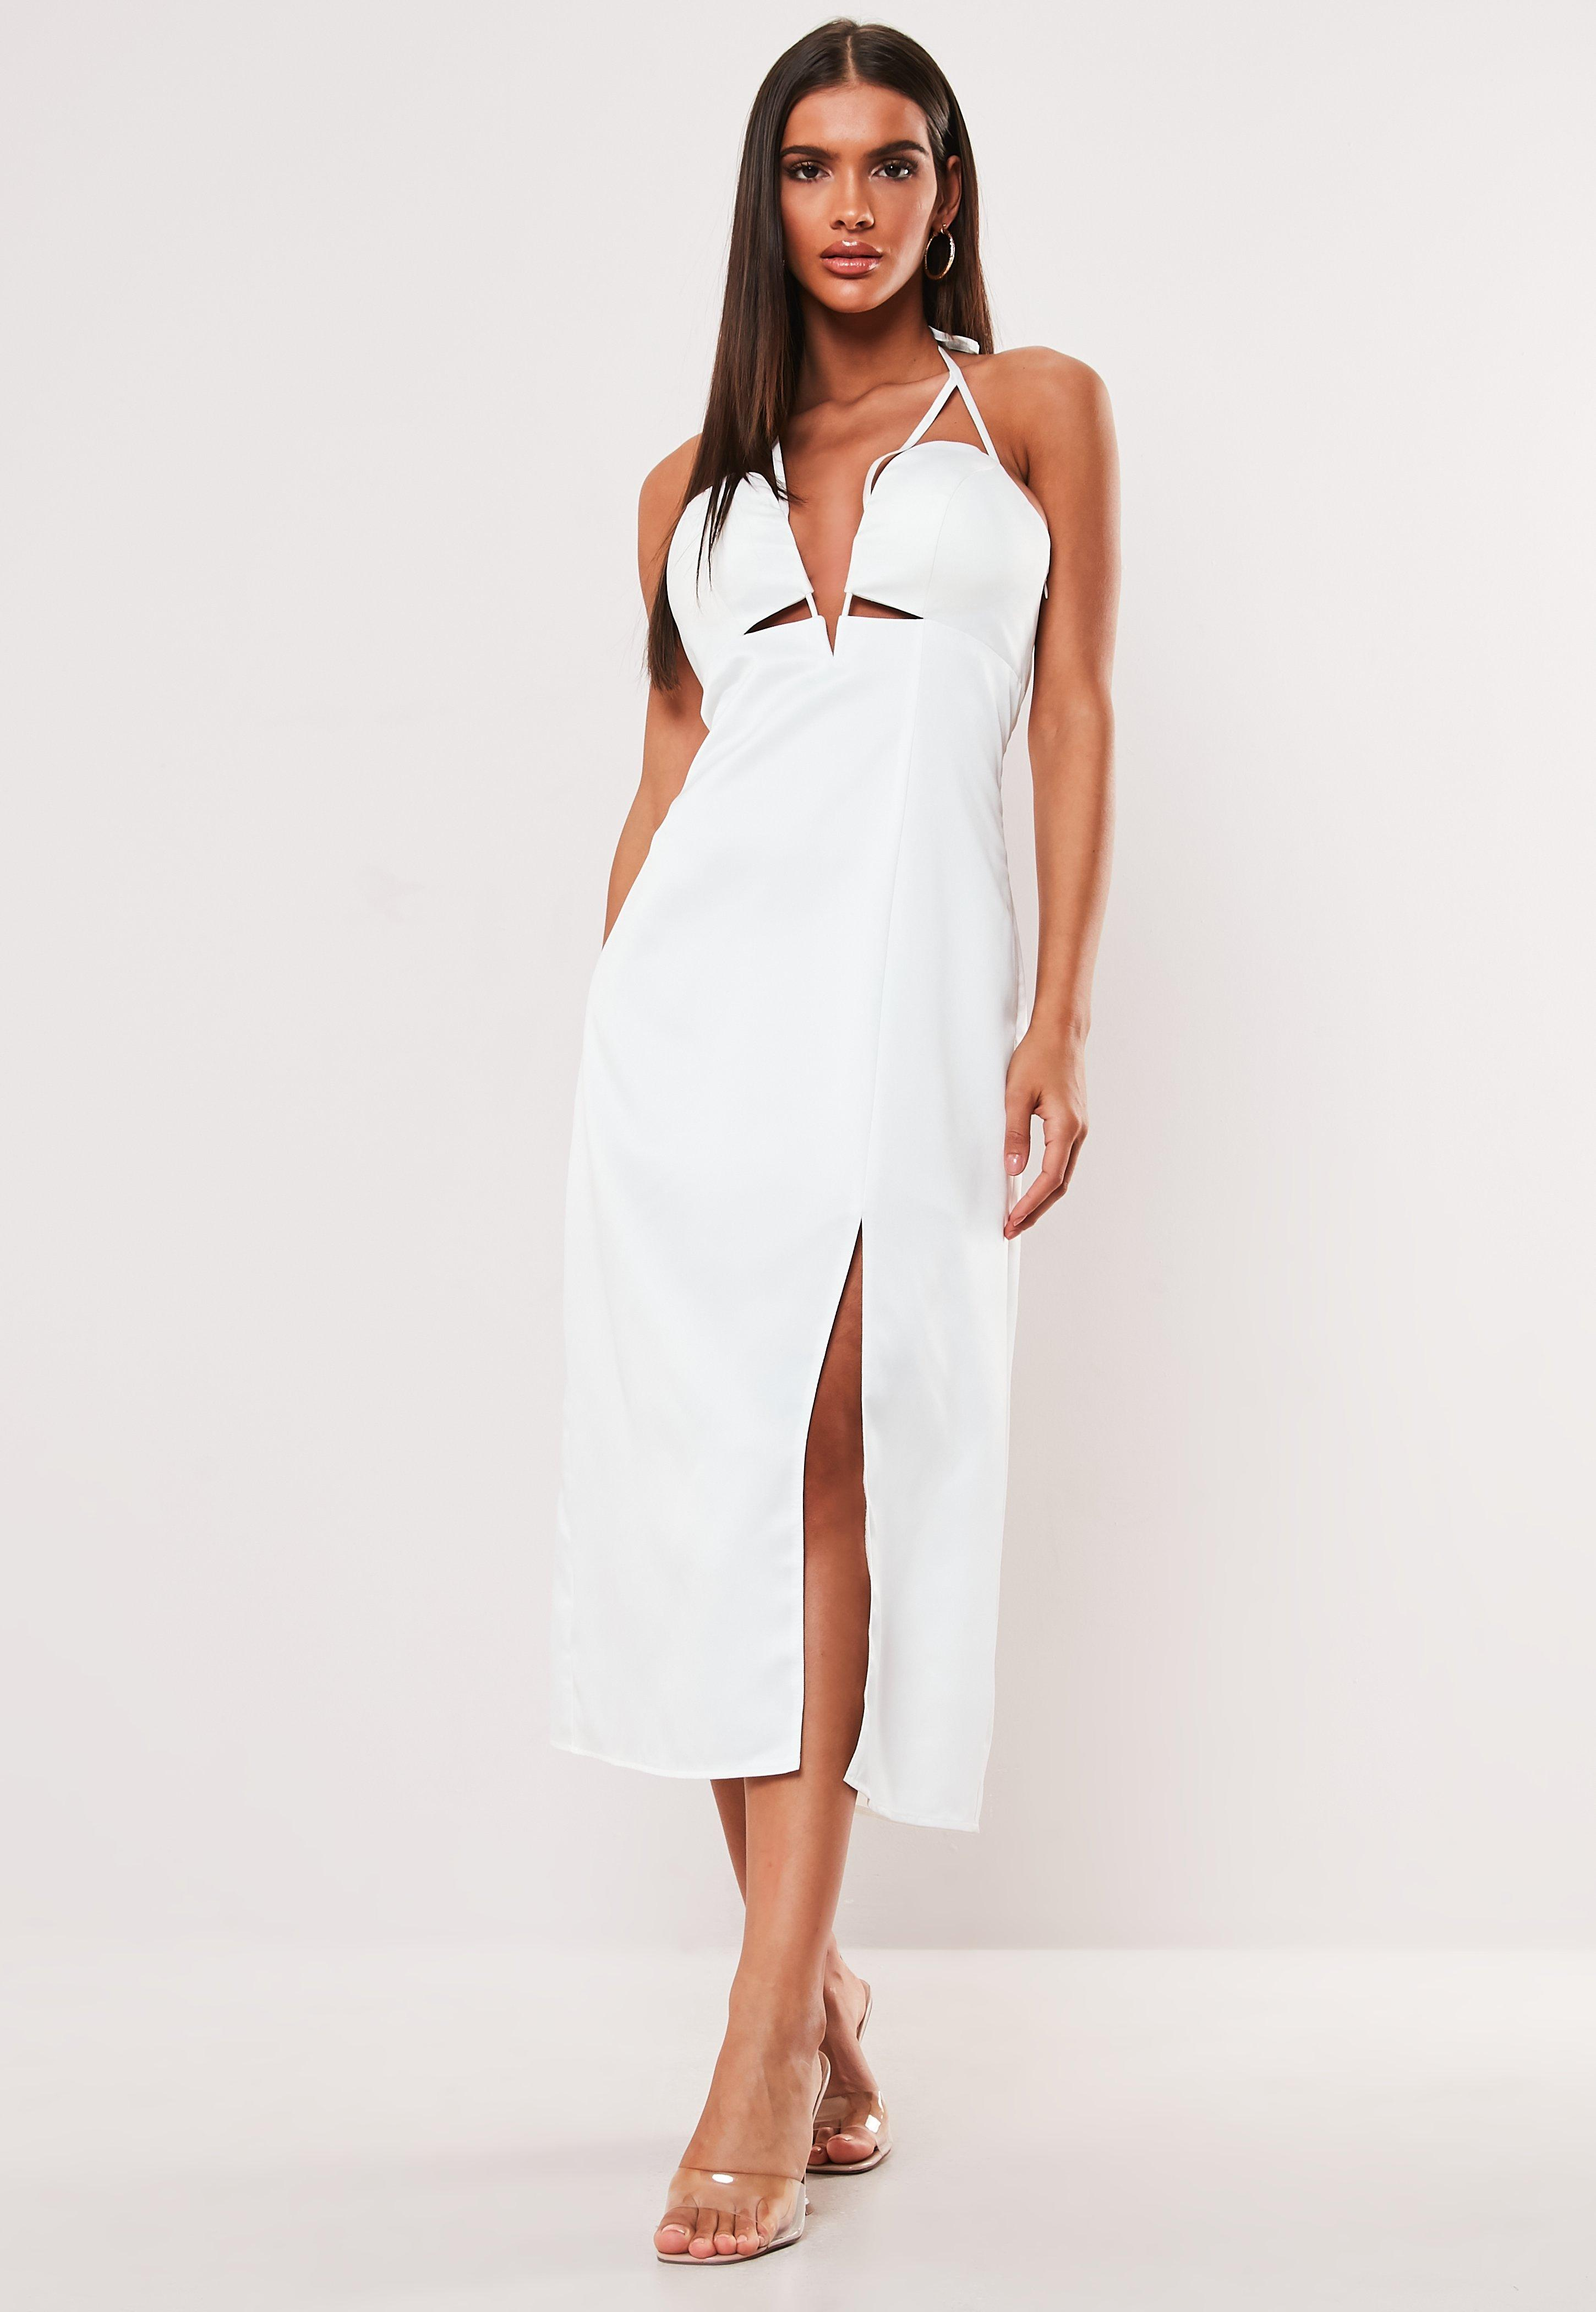 Dos Robe NuDécolleté Dos Dos Missguided NuDécolleté Robe Missguided Robe 5LRAjq43